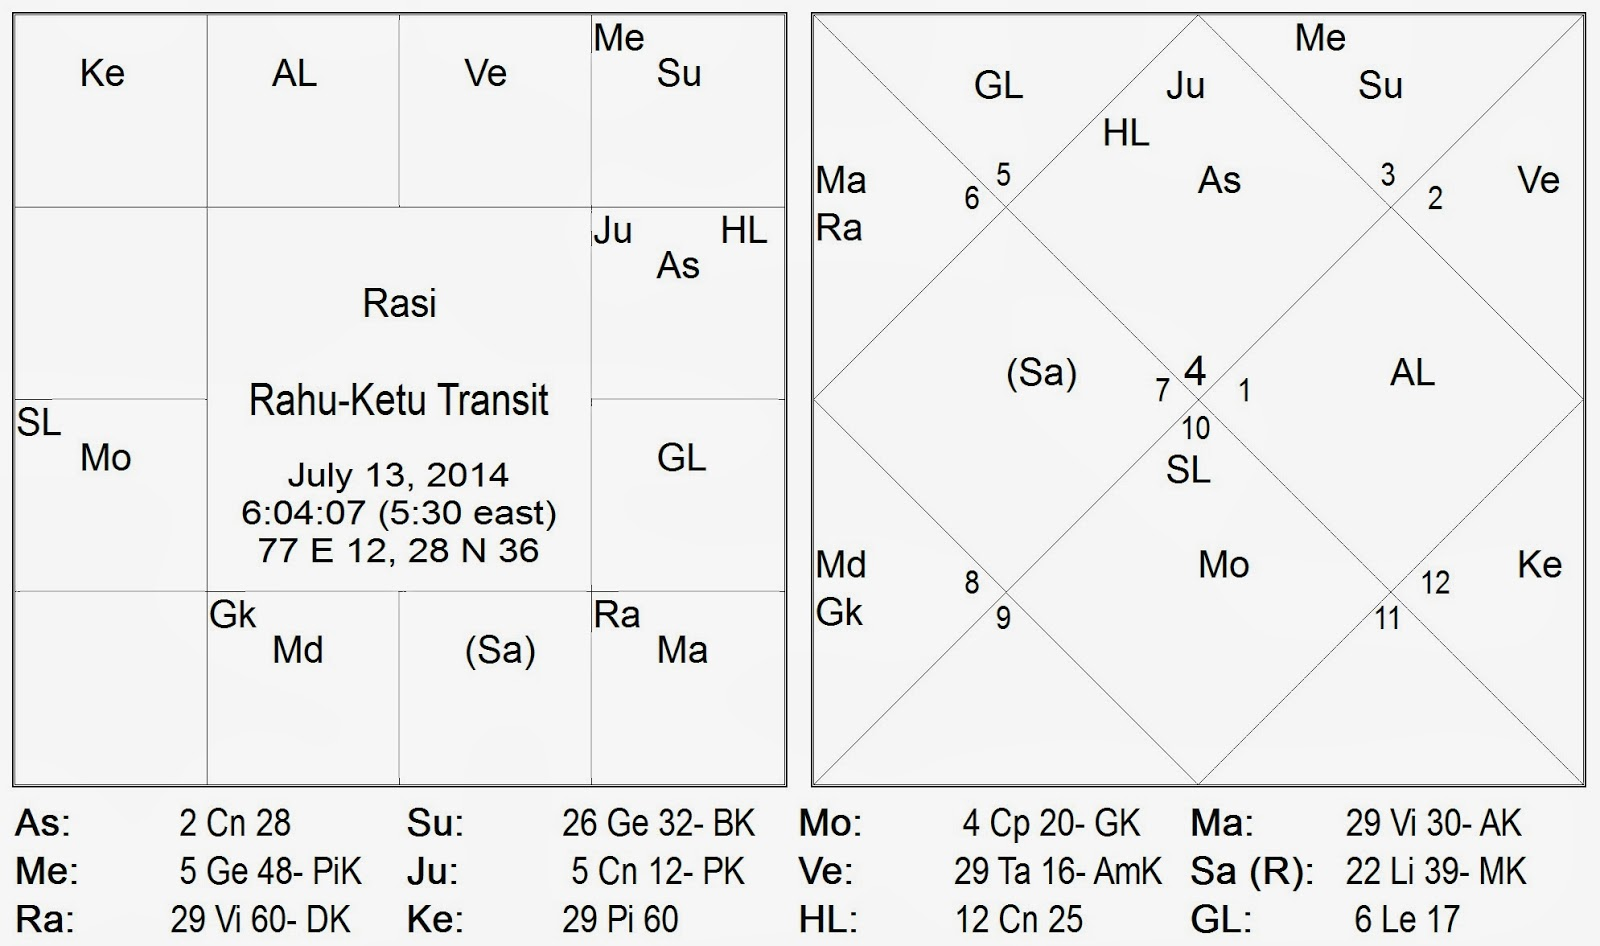 Rahu ketu transit gochara peyarchi to virgo pisces kanya meena rashi on july 13 2014 in vedic astrology its mysterious and compulsive impact on your